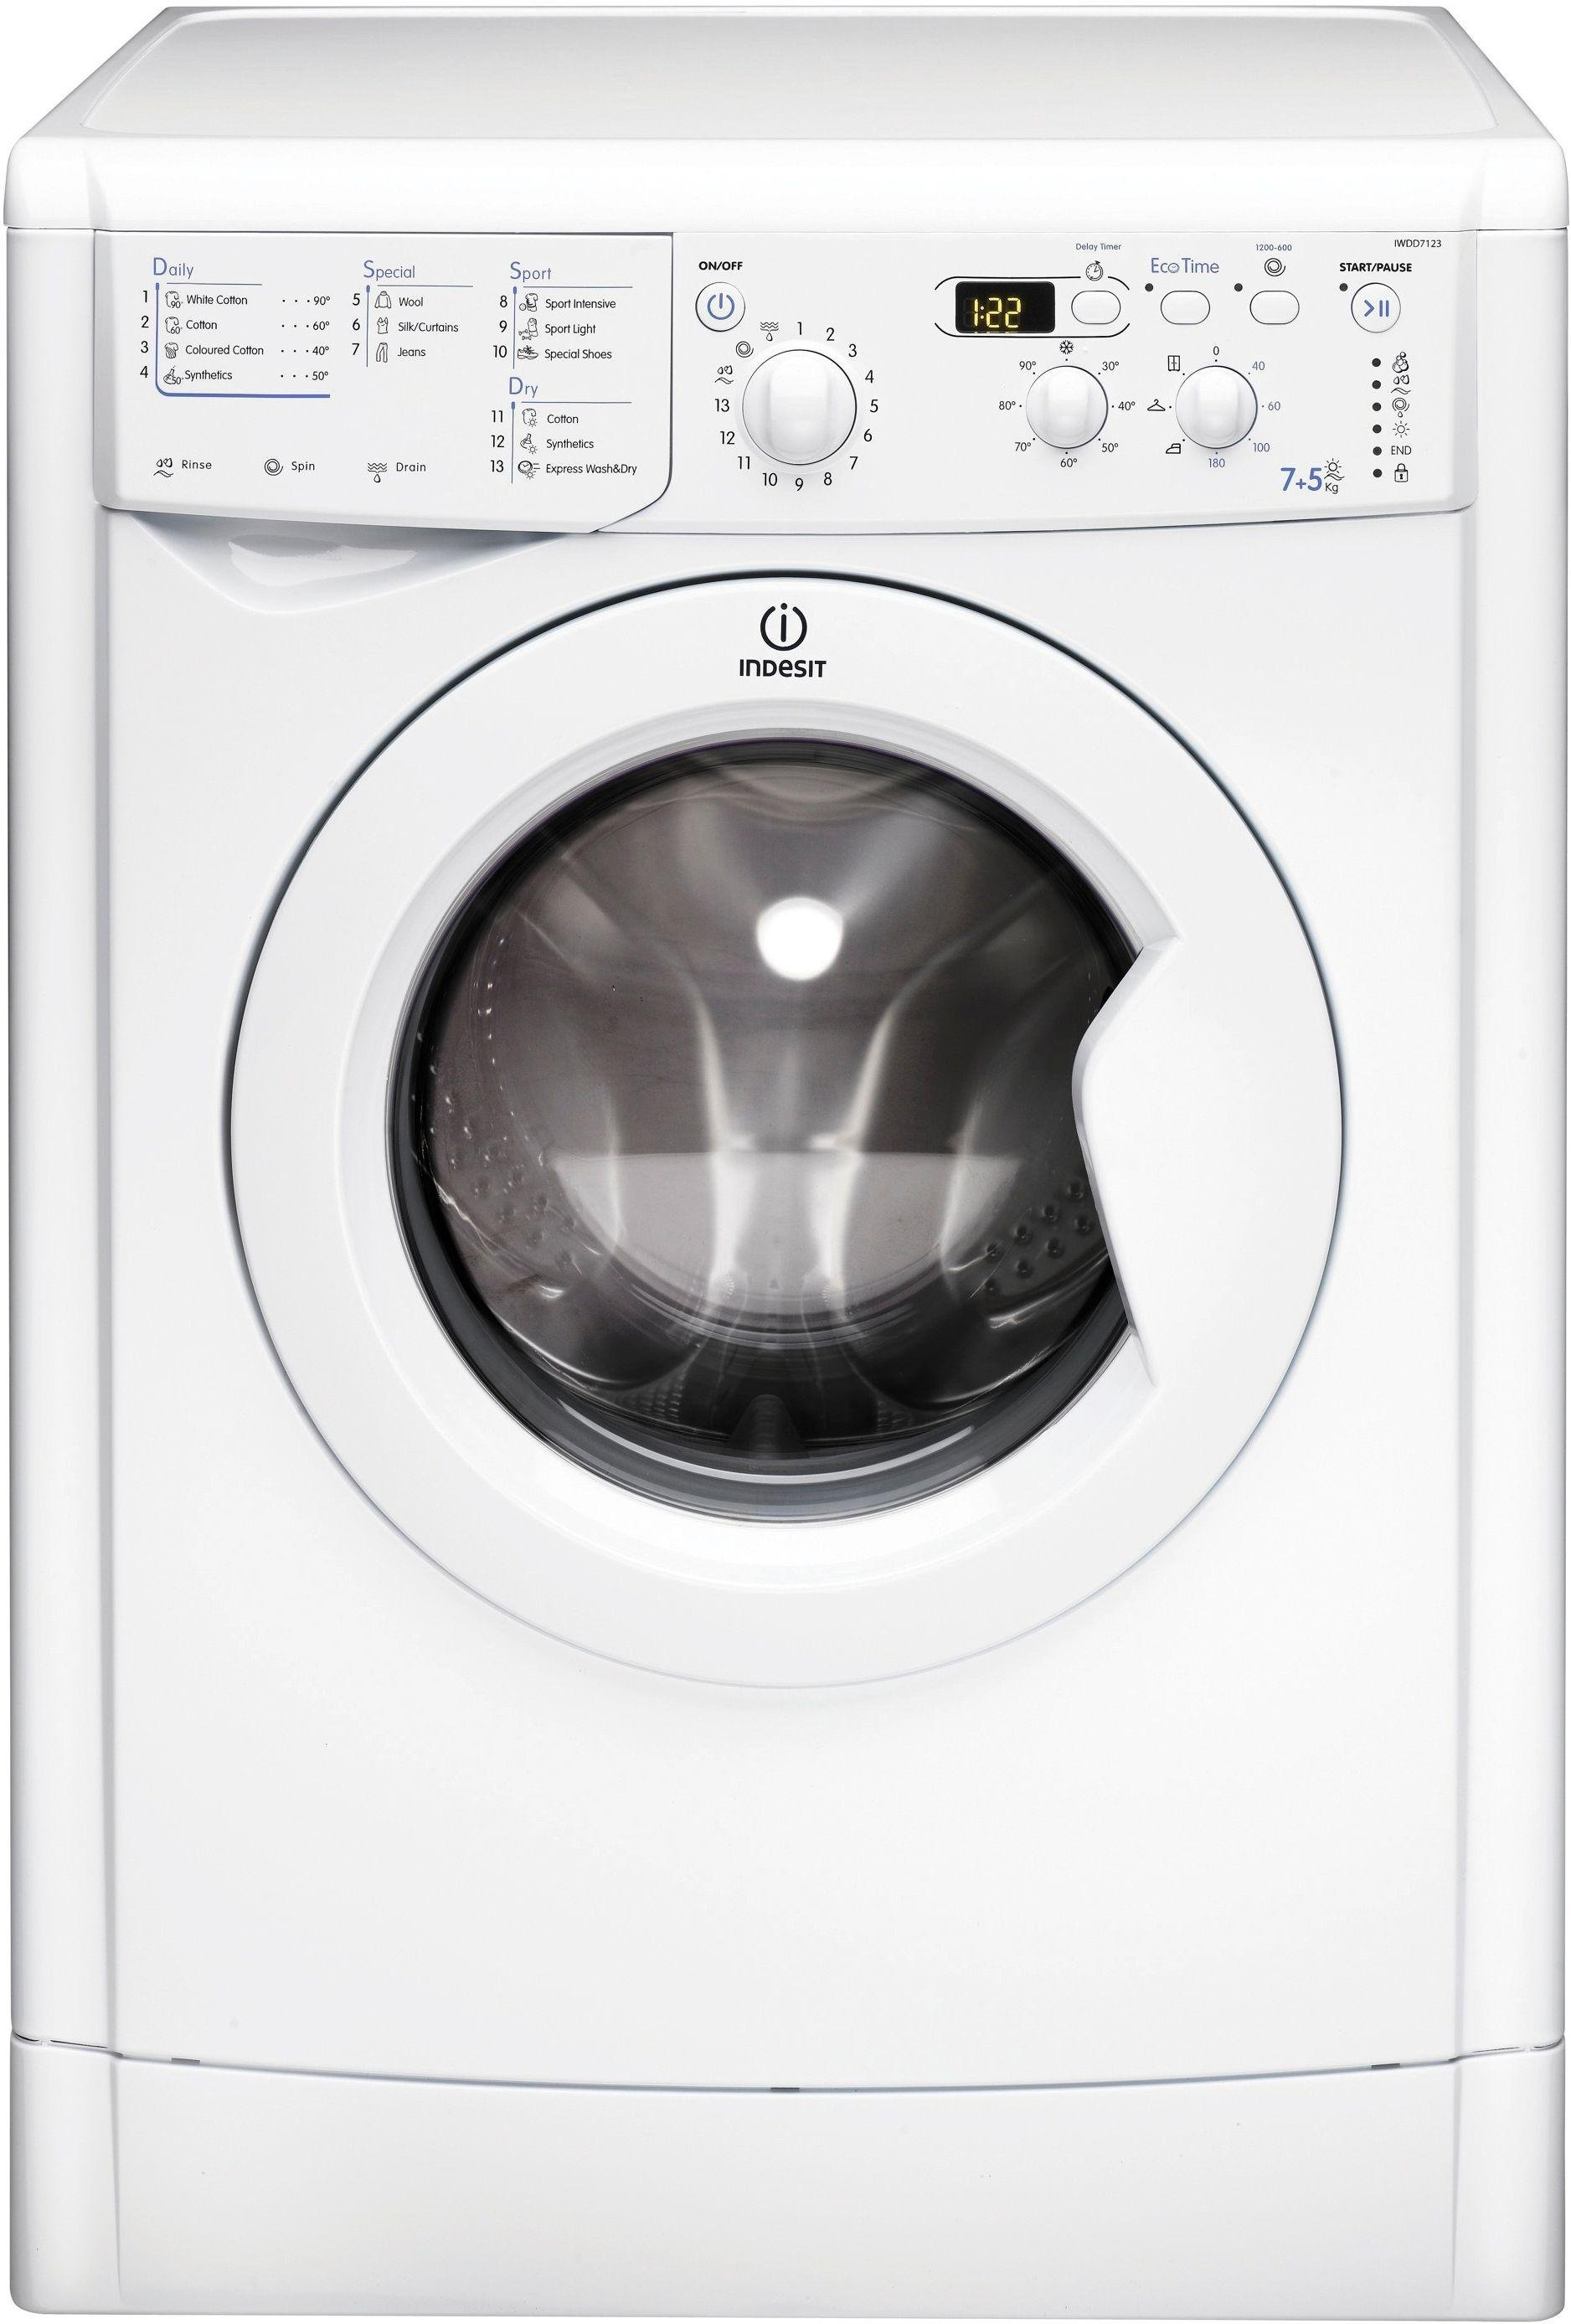 Image of Indesit  EcoTime IWDD7123P